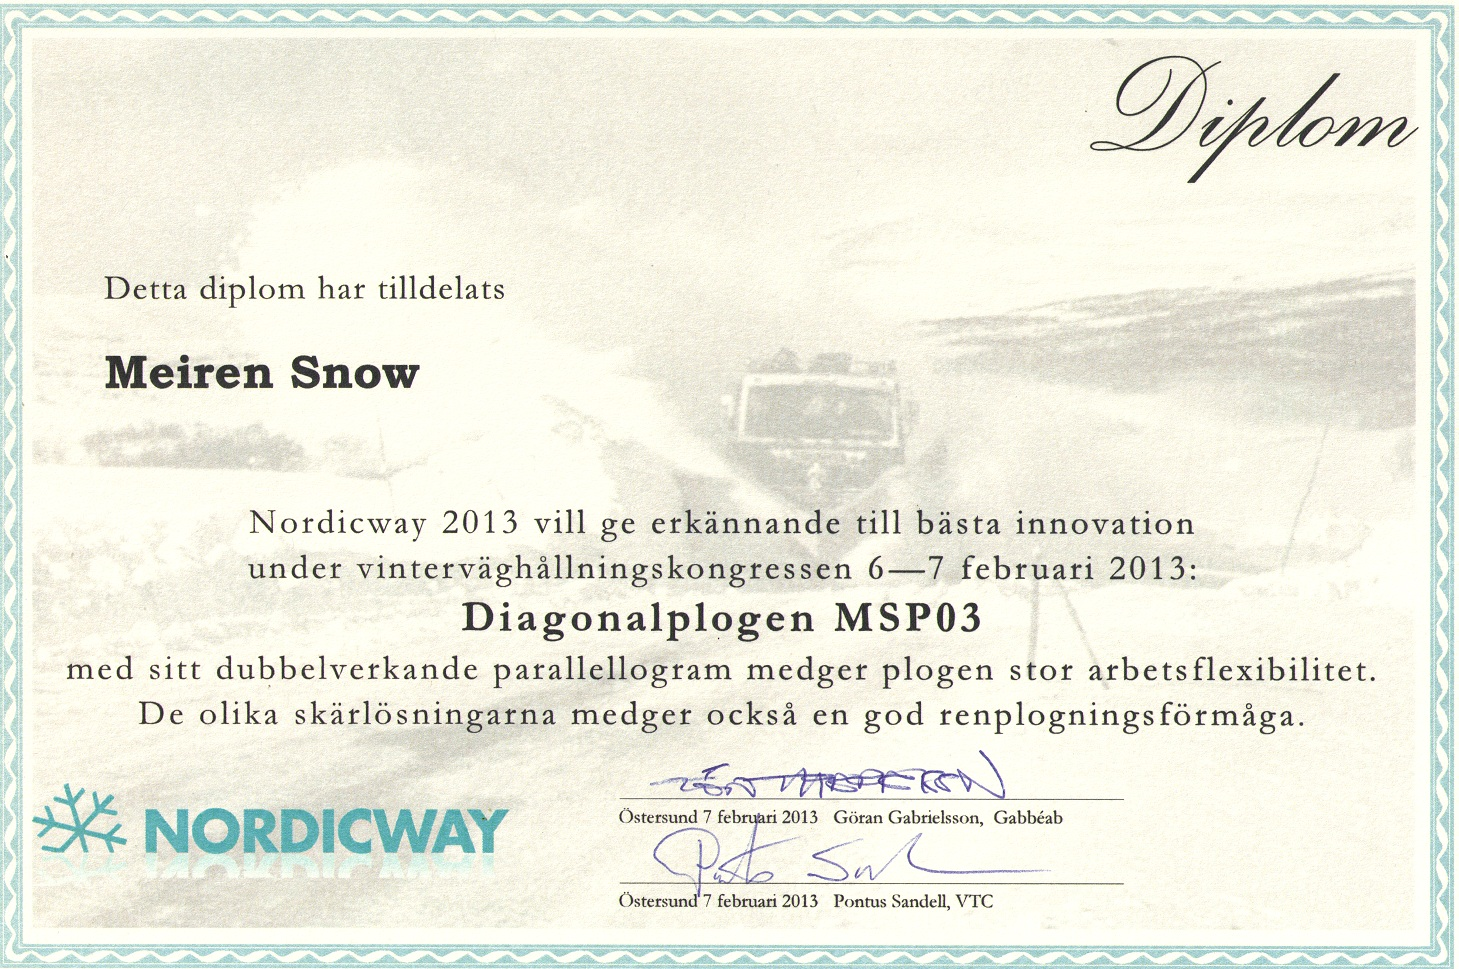 Nordicway innovation award 2013